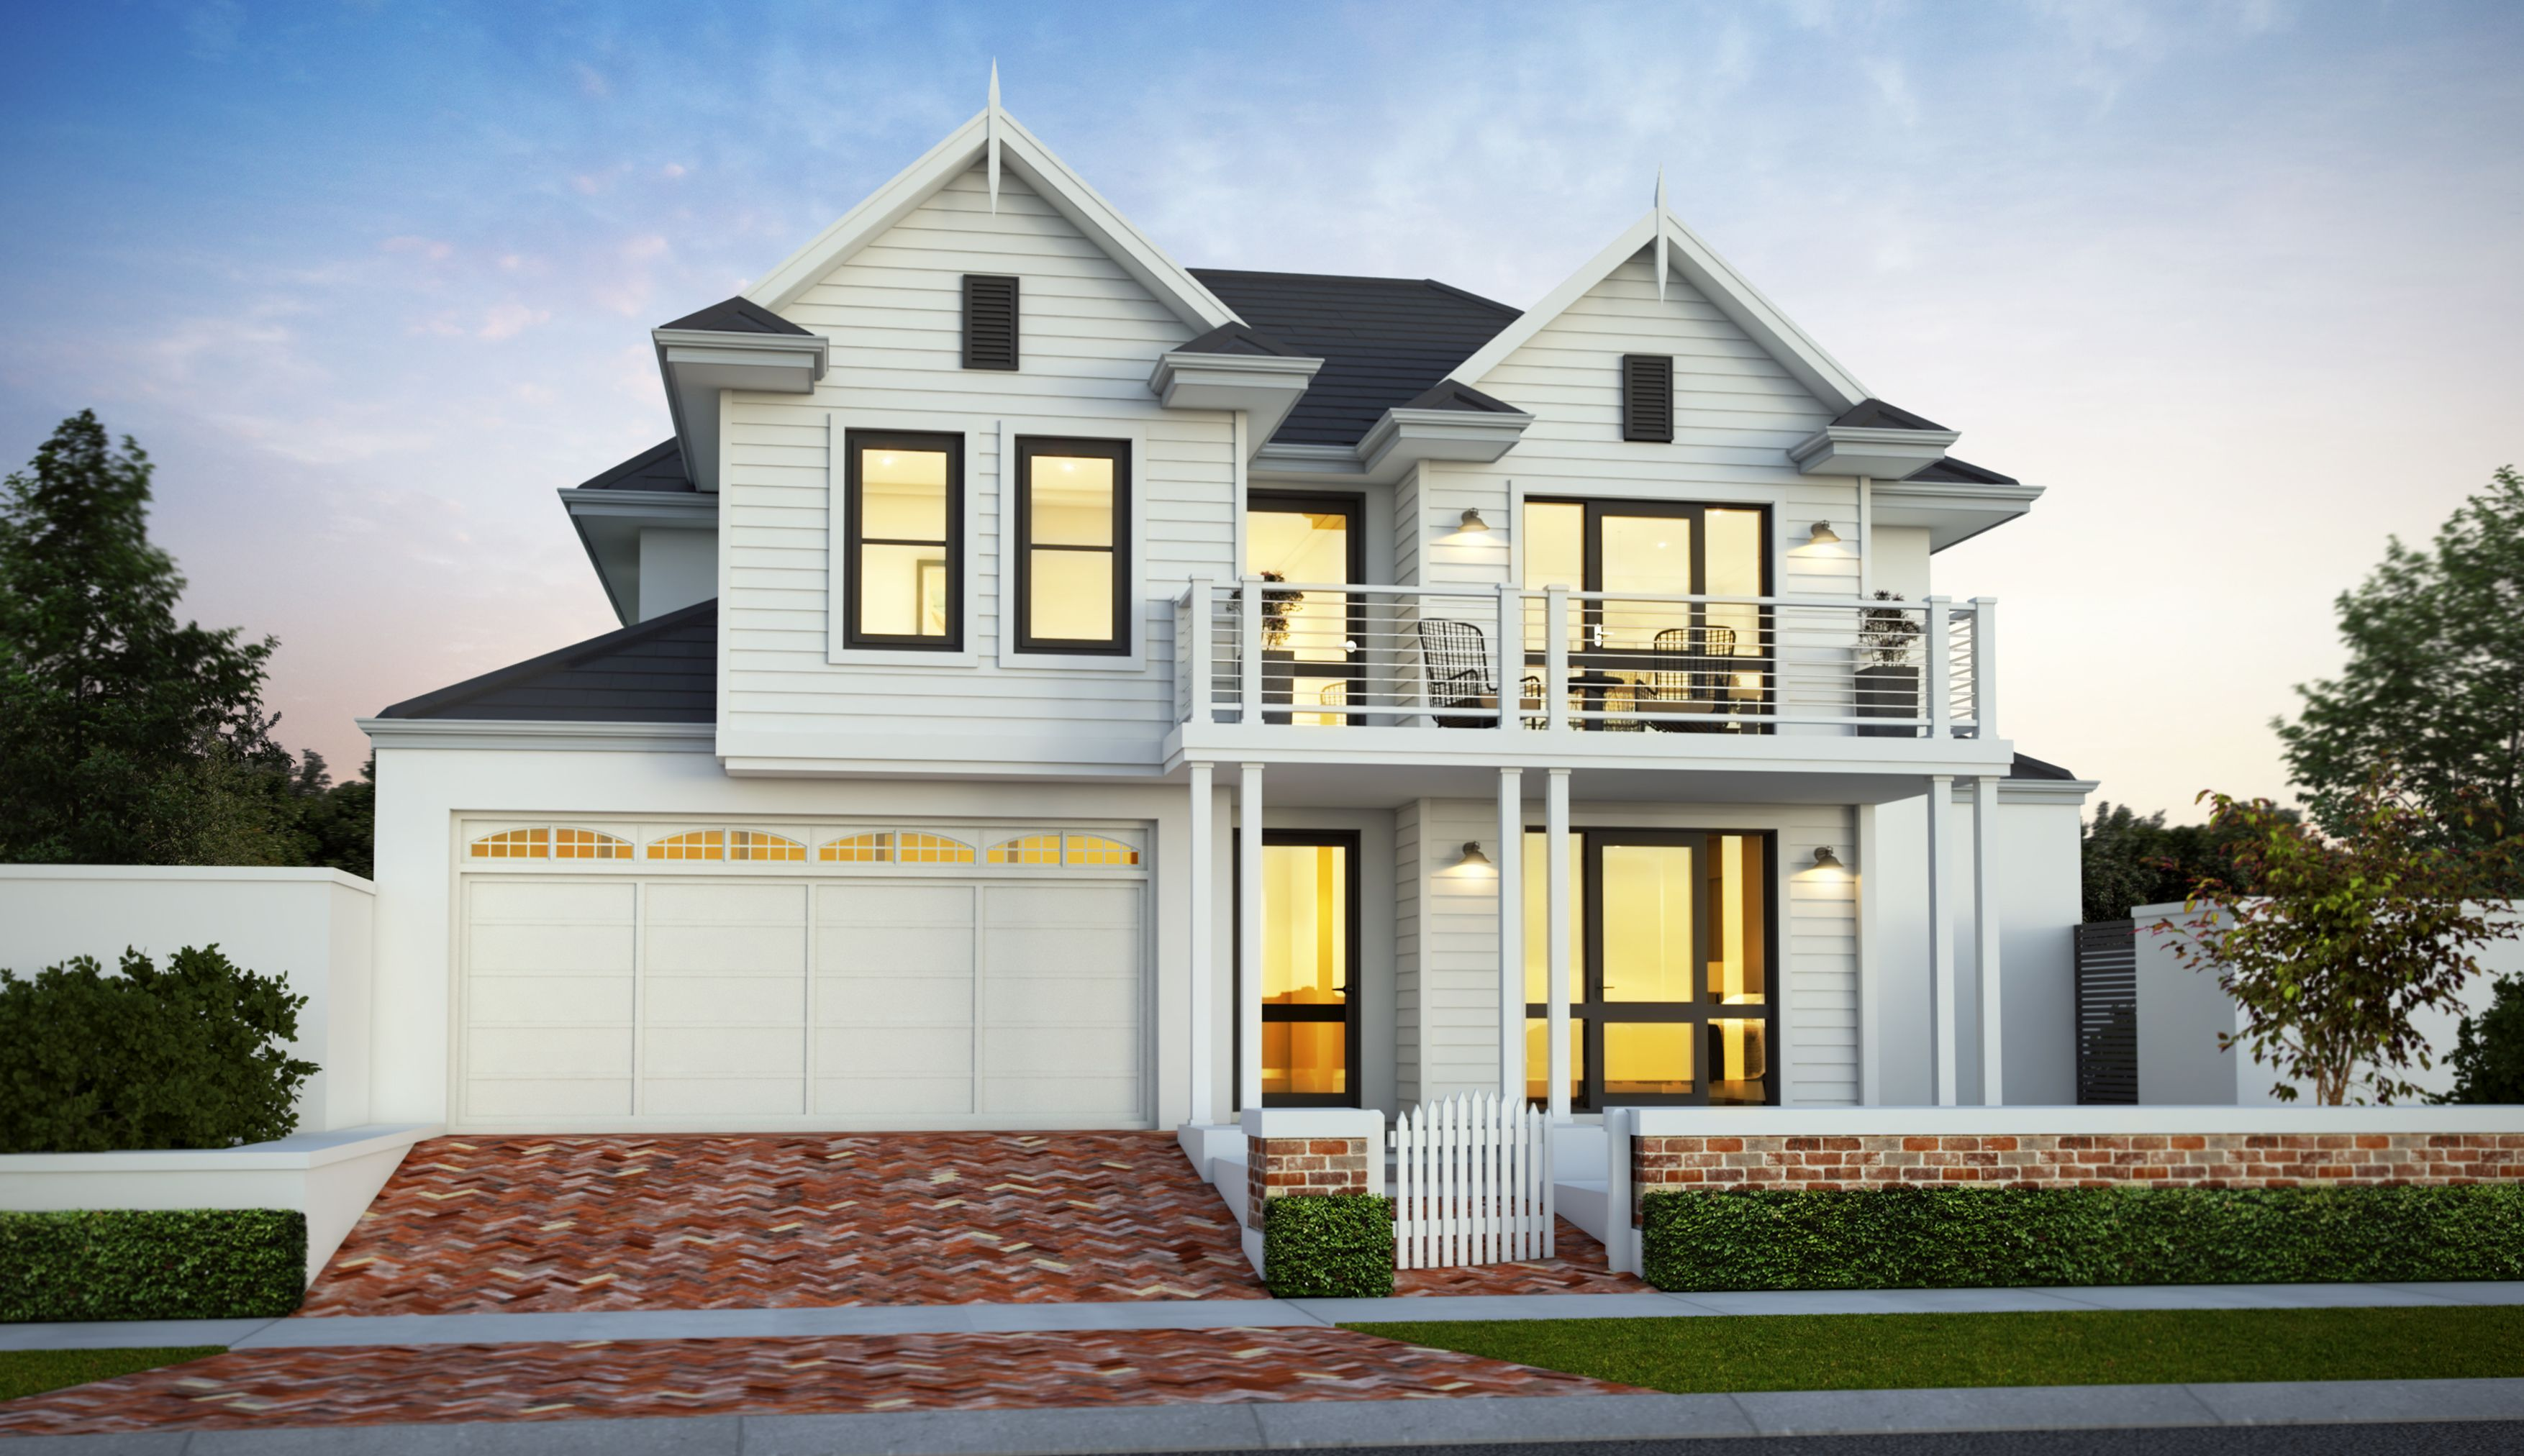 than the custom product we invite you to have a look at our standard two storey hampton style home design below it just maybe what you are after - Hampton Home Designs